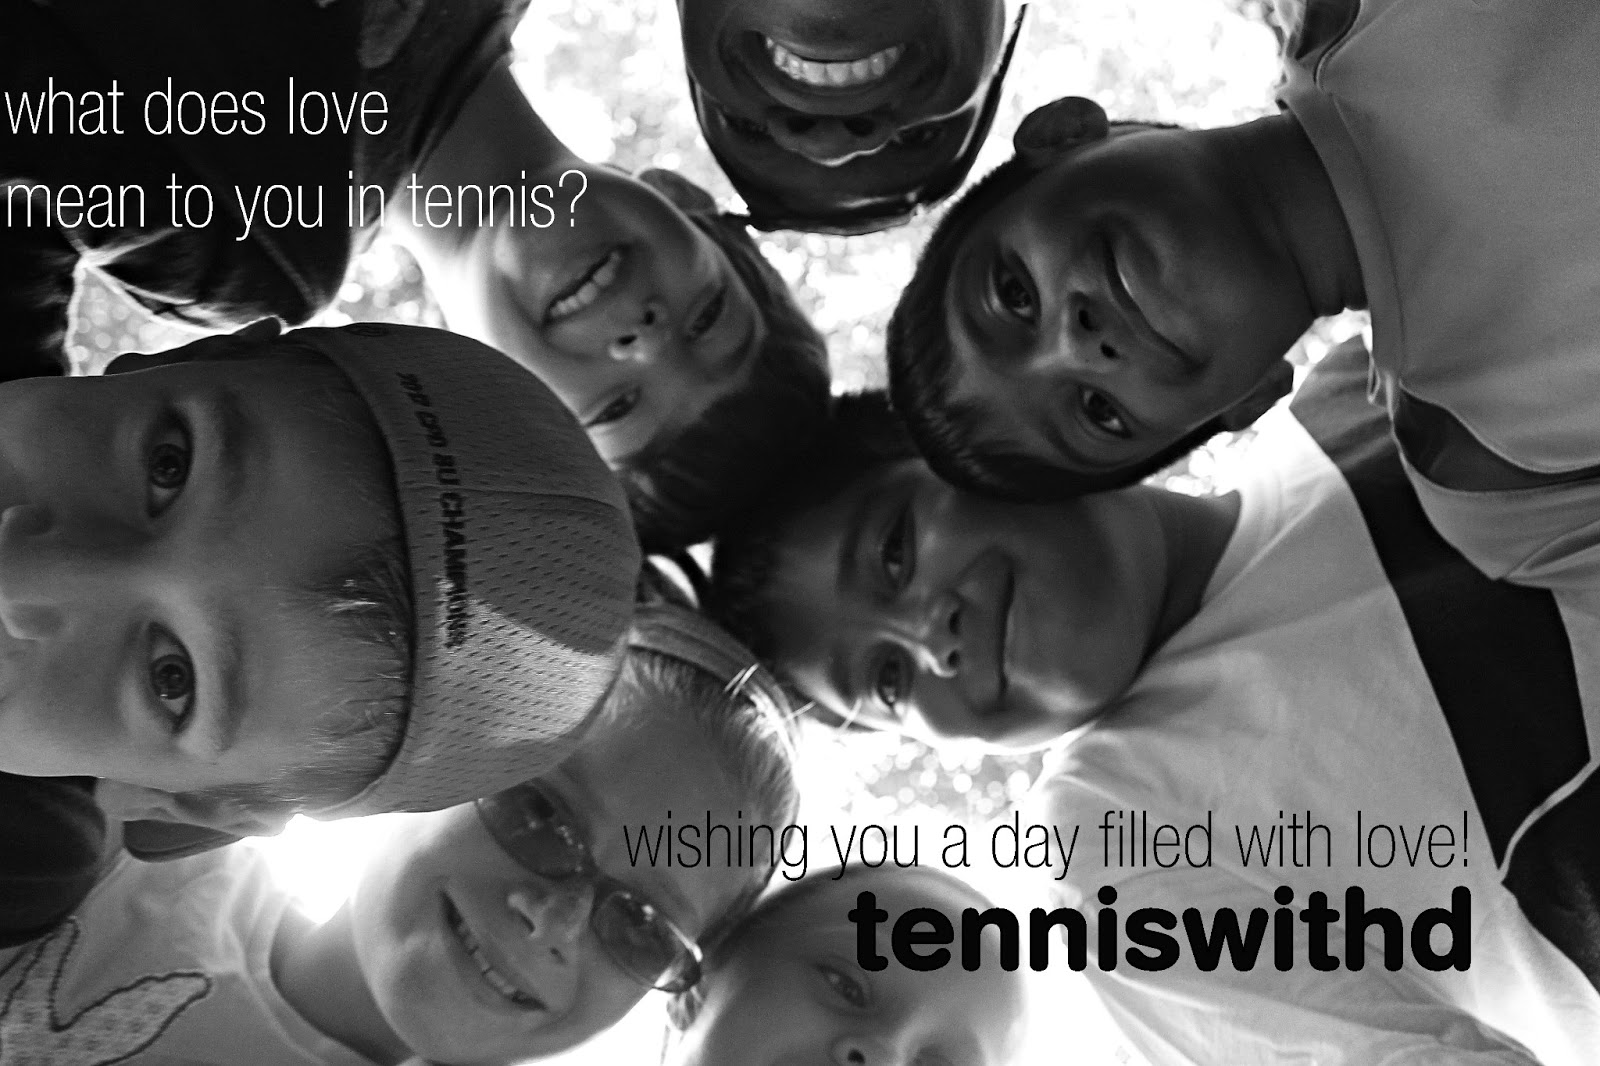 Property of TenniswithD